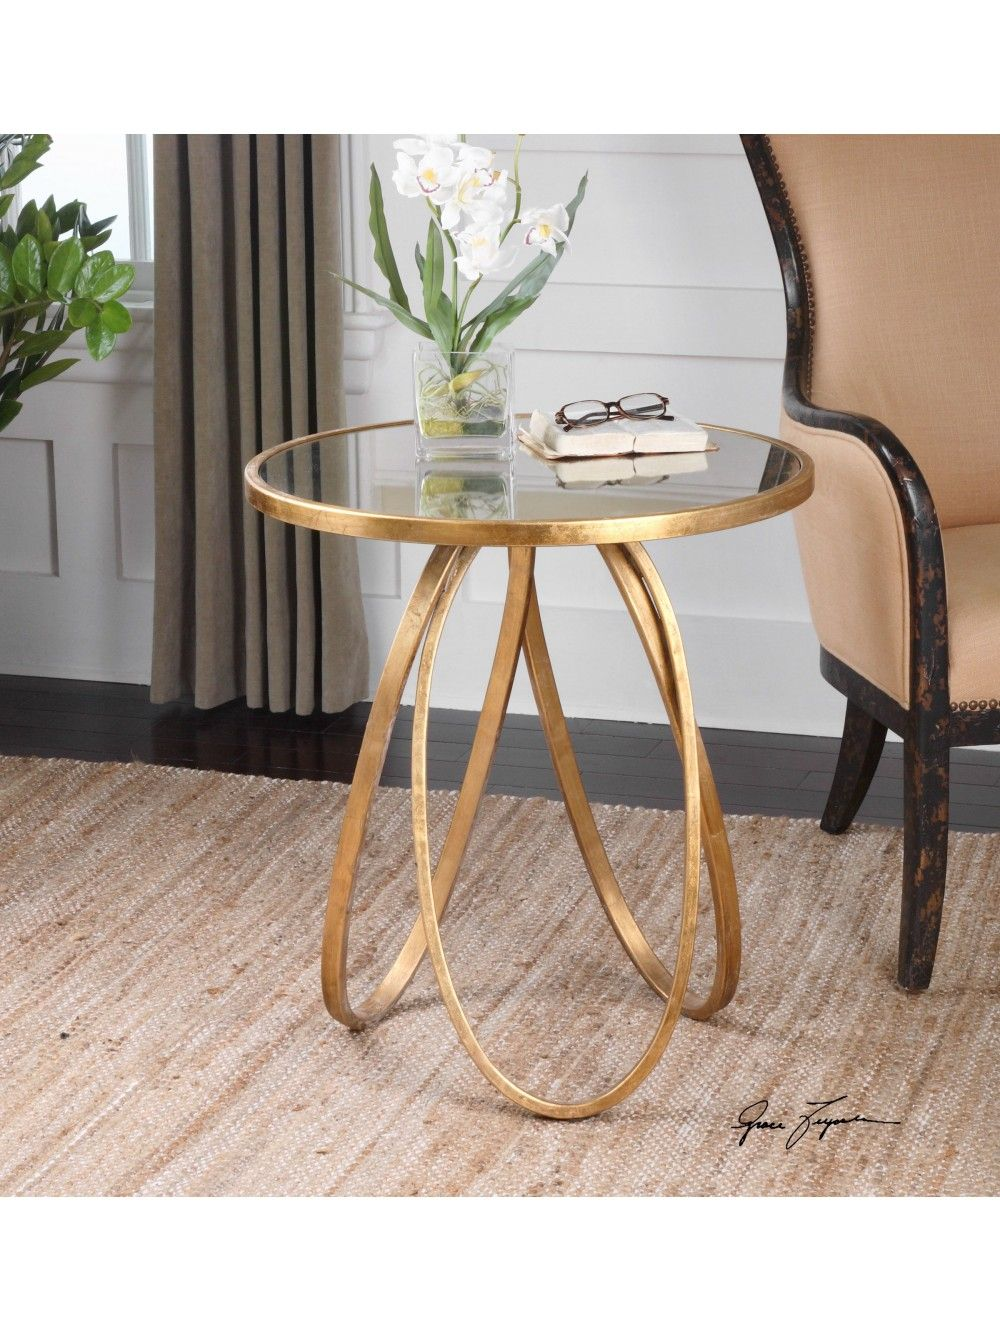 bernard accent table landgathome gold end tables with matching mirrors pier one chairs small half moon entry square marble coffee set retro modern carved wood side patio umbrella